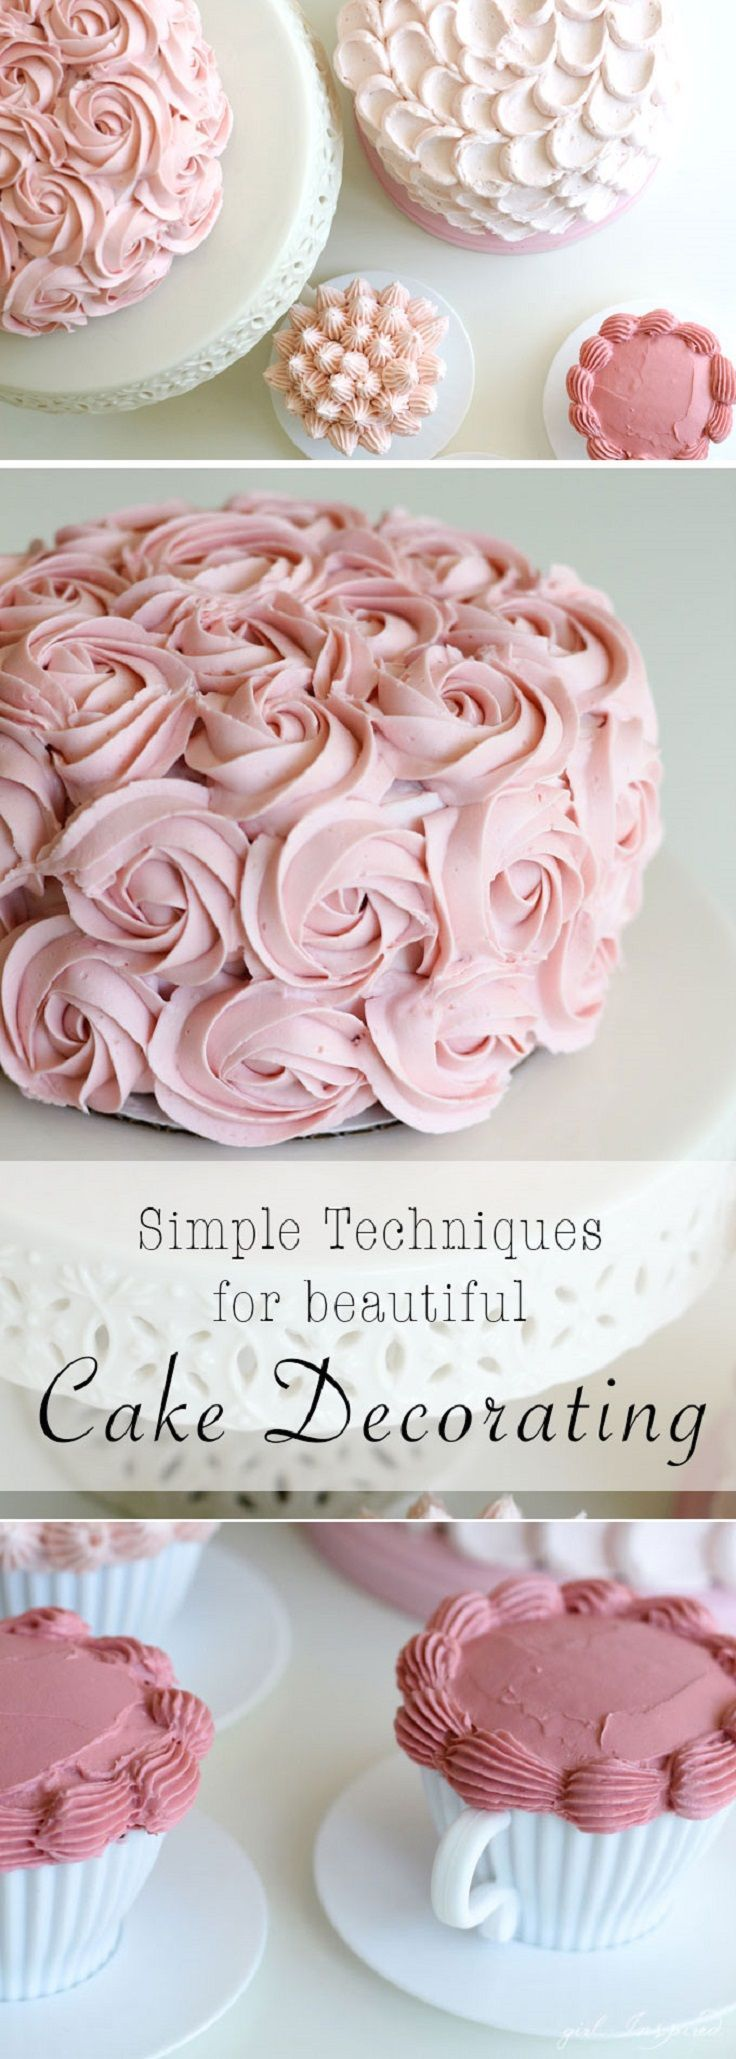 Cake Decorating Techniques Names : 25+ best ideas about Simple Cake Decorating on Pinterest ...